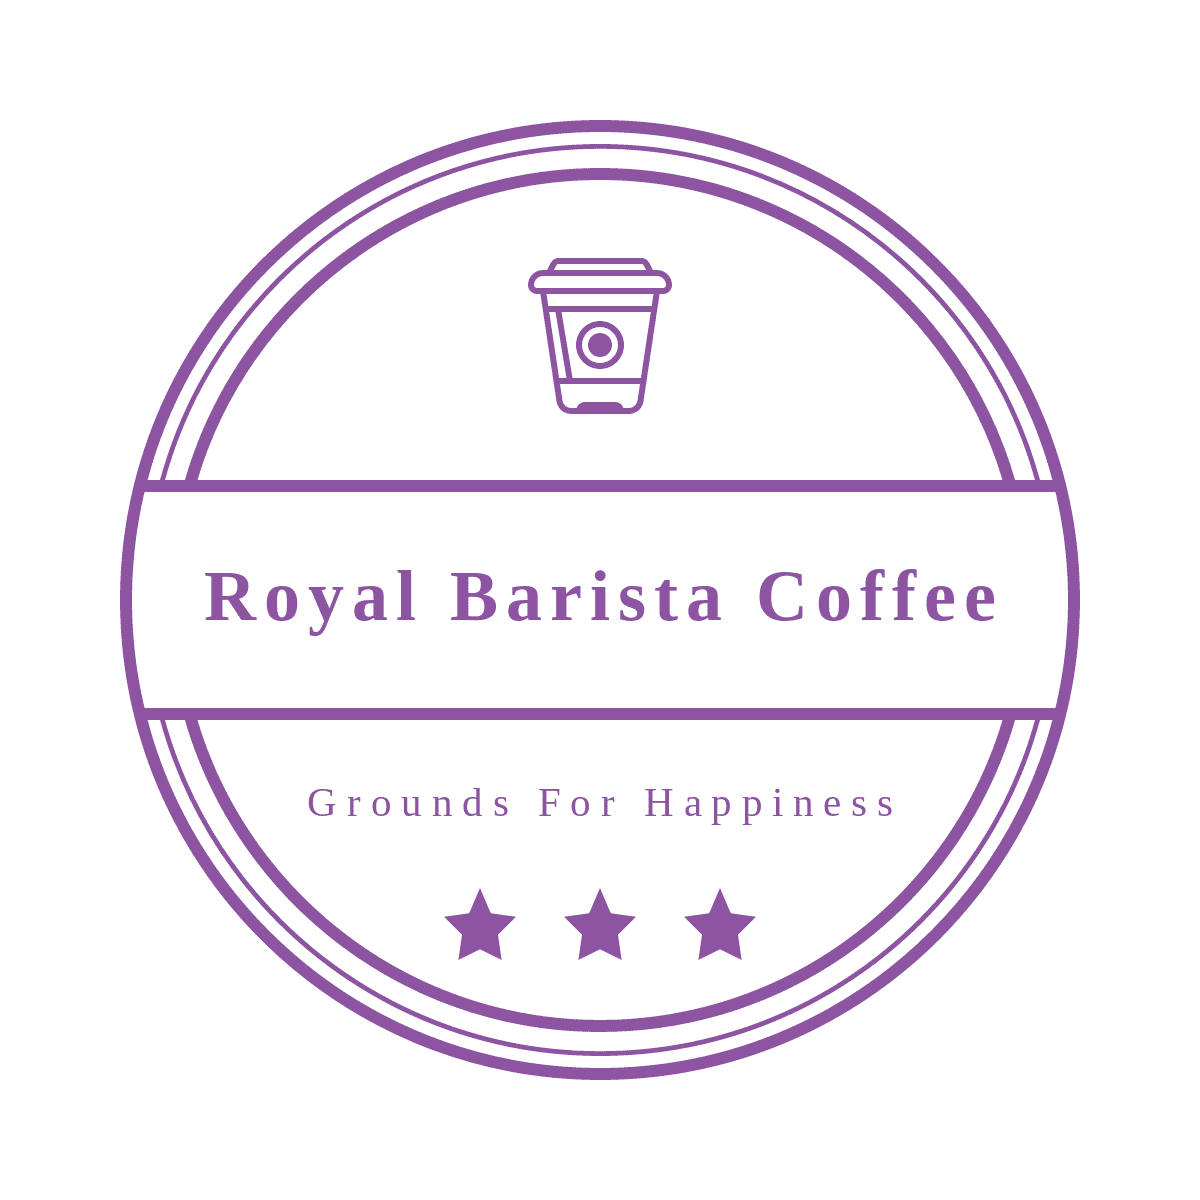 Royal Barista Coffee